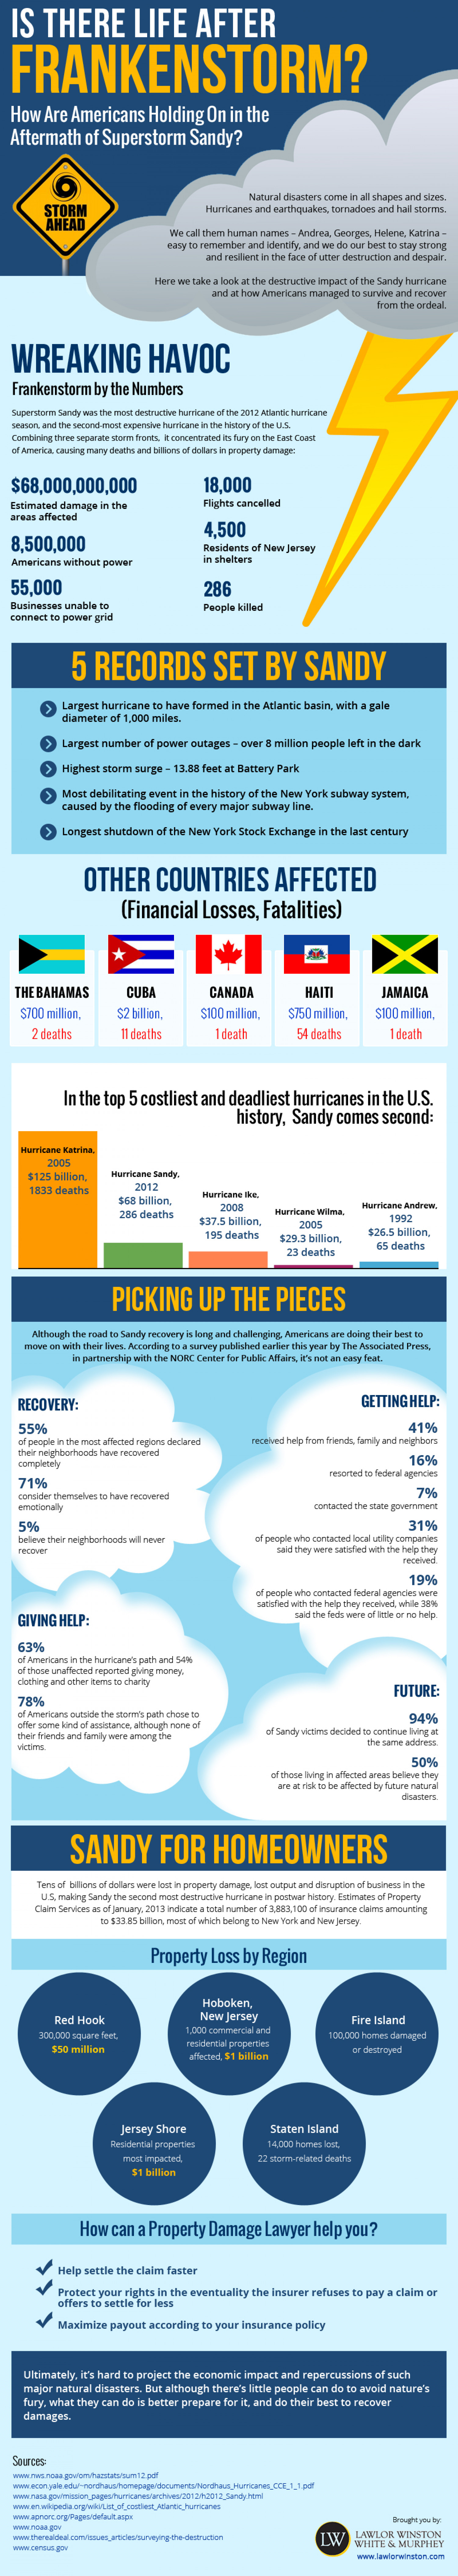 Is There Life After Frankenstorm? Infographic